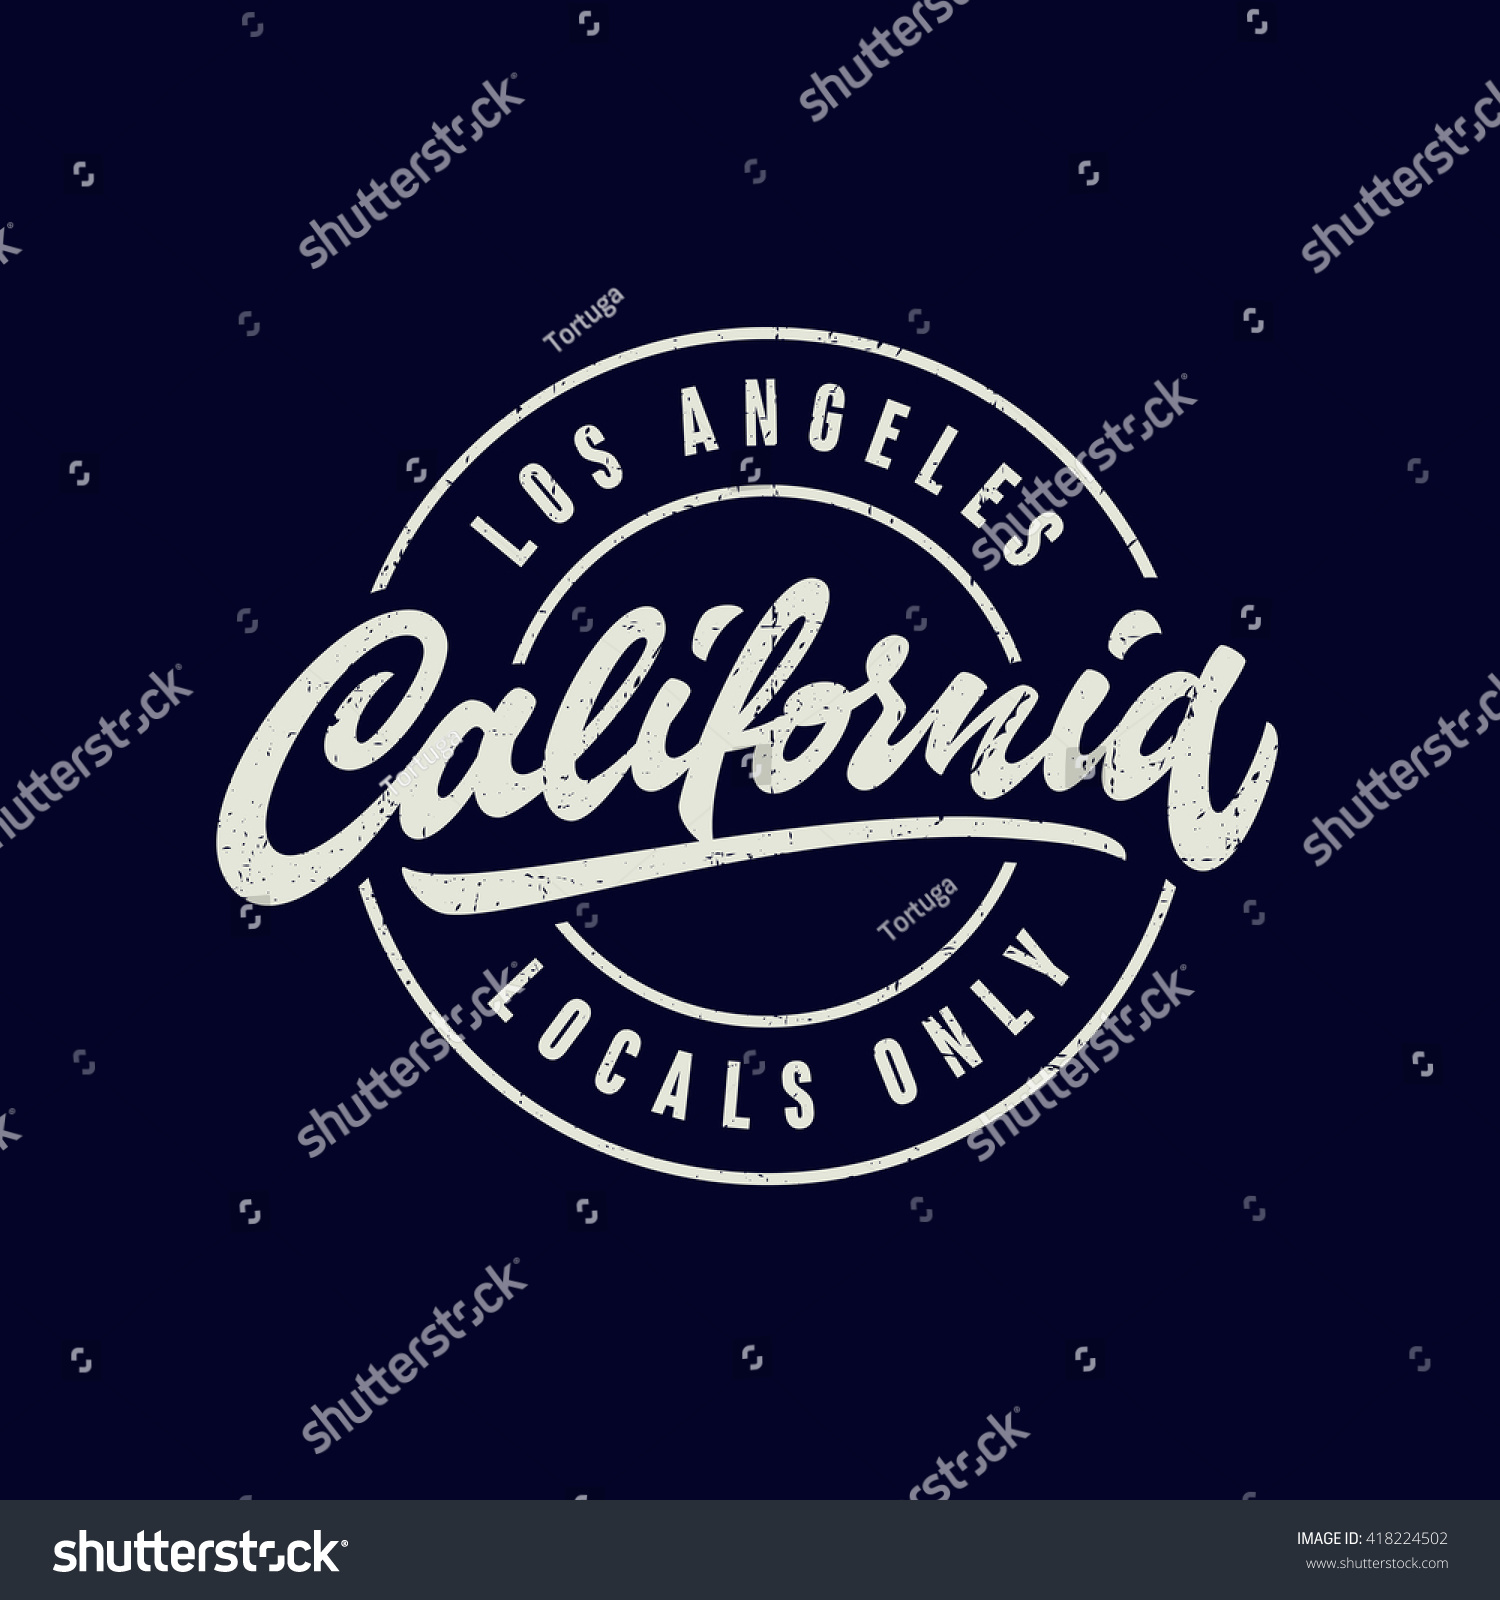 Shirt design los angeles